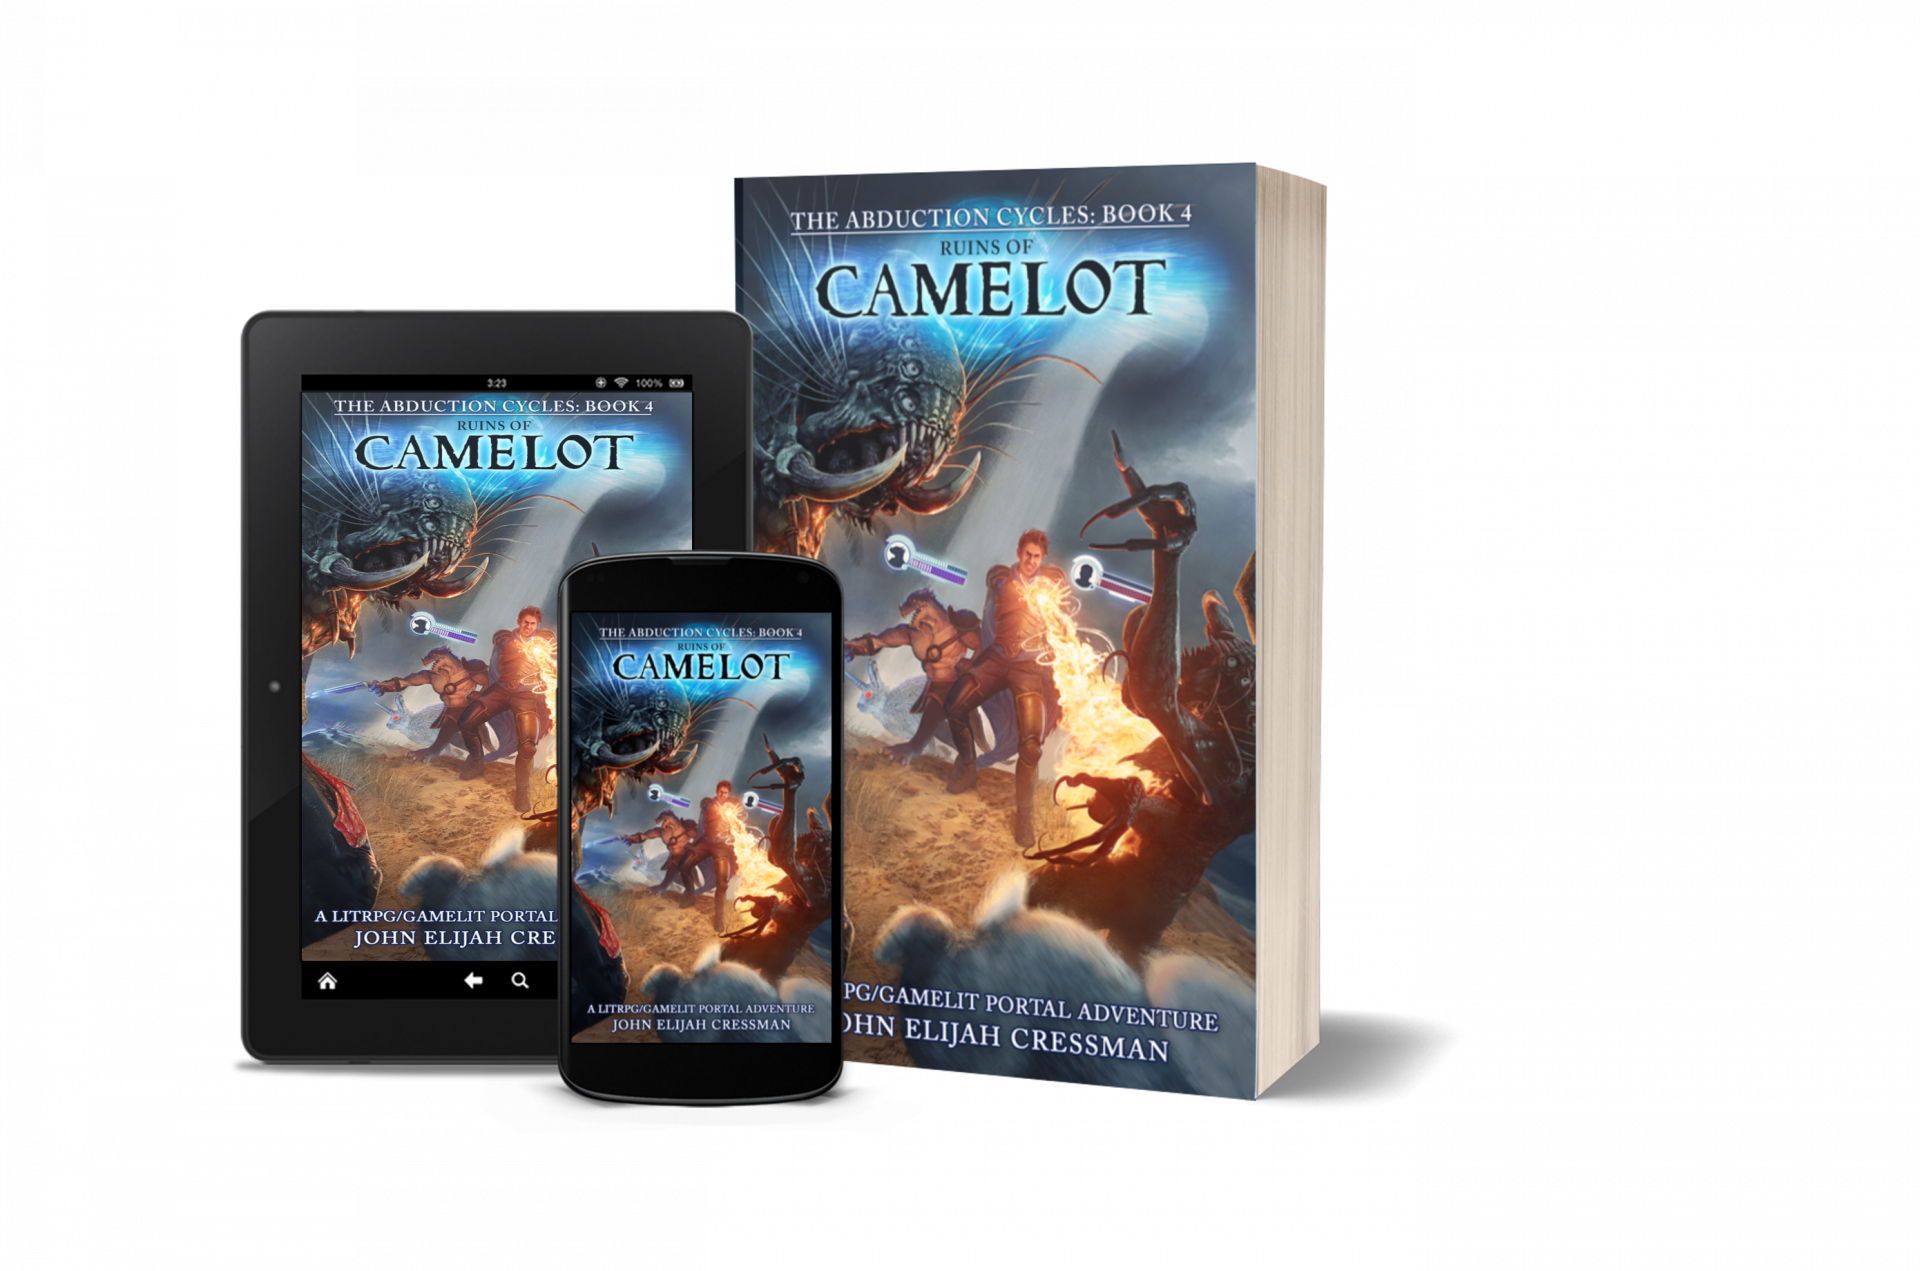 Abduction Cycles: Ruins of Camelot Summary